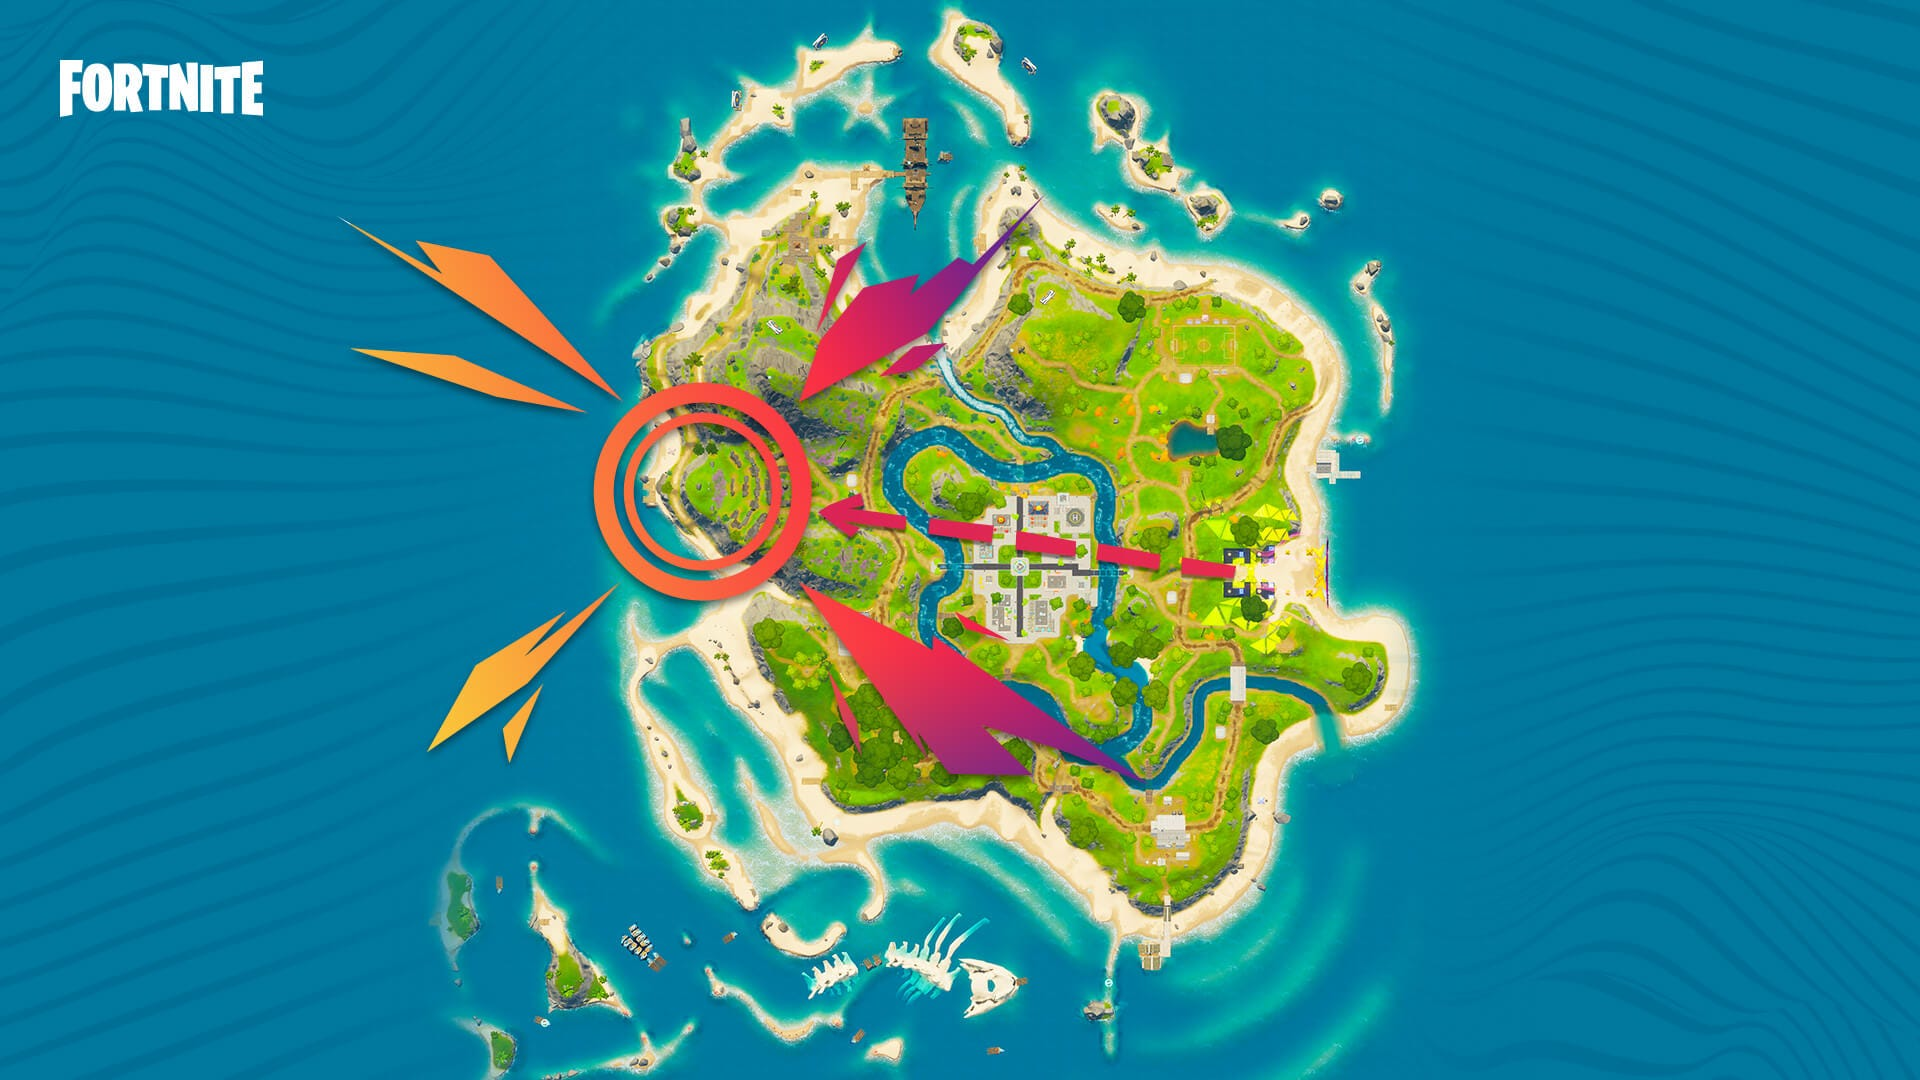 fortnite game map with directions